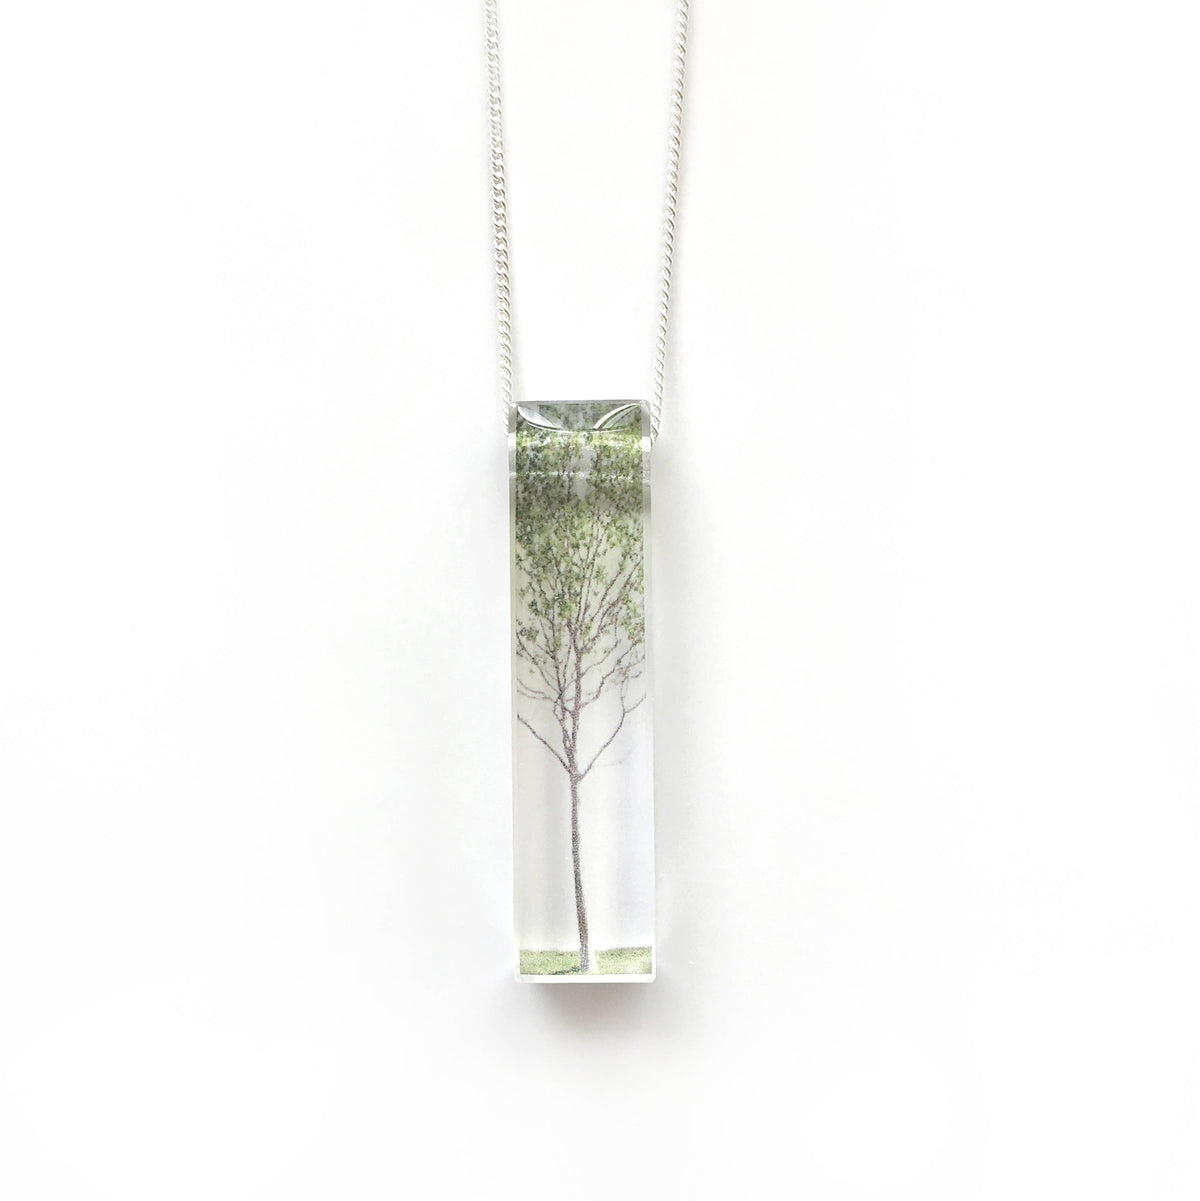 Black Drop Designs - Skinny Green Tree Necklace